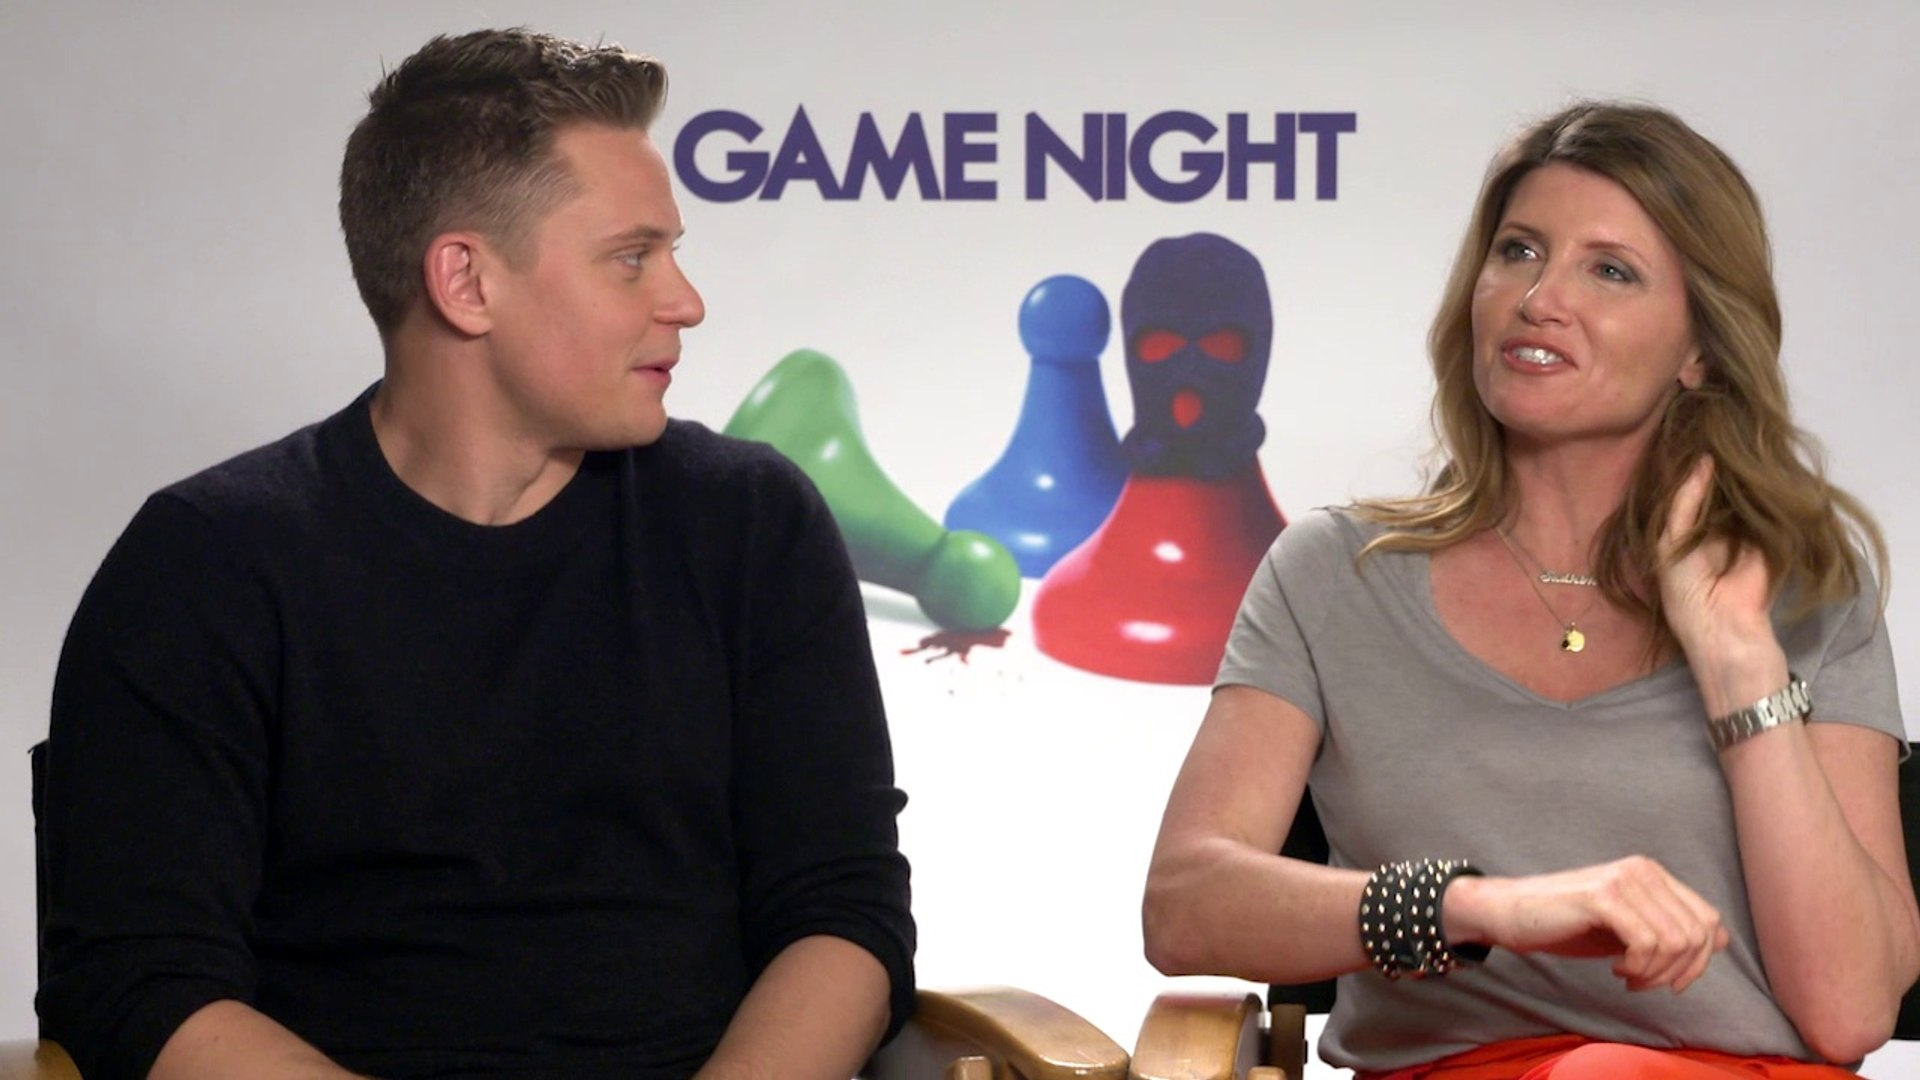 Game Night - Sharon Horgan and Billy Magnussen Interview